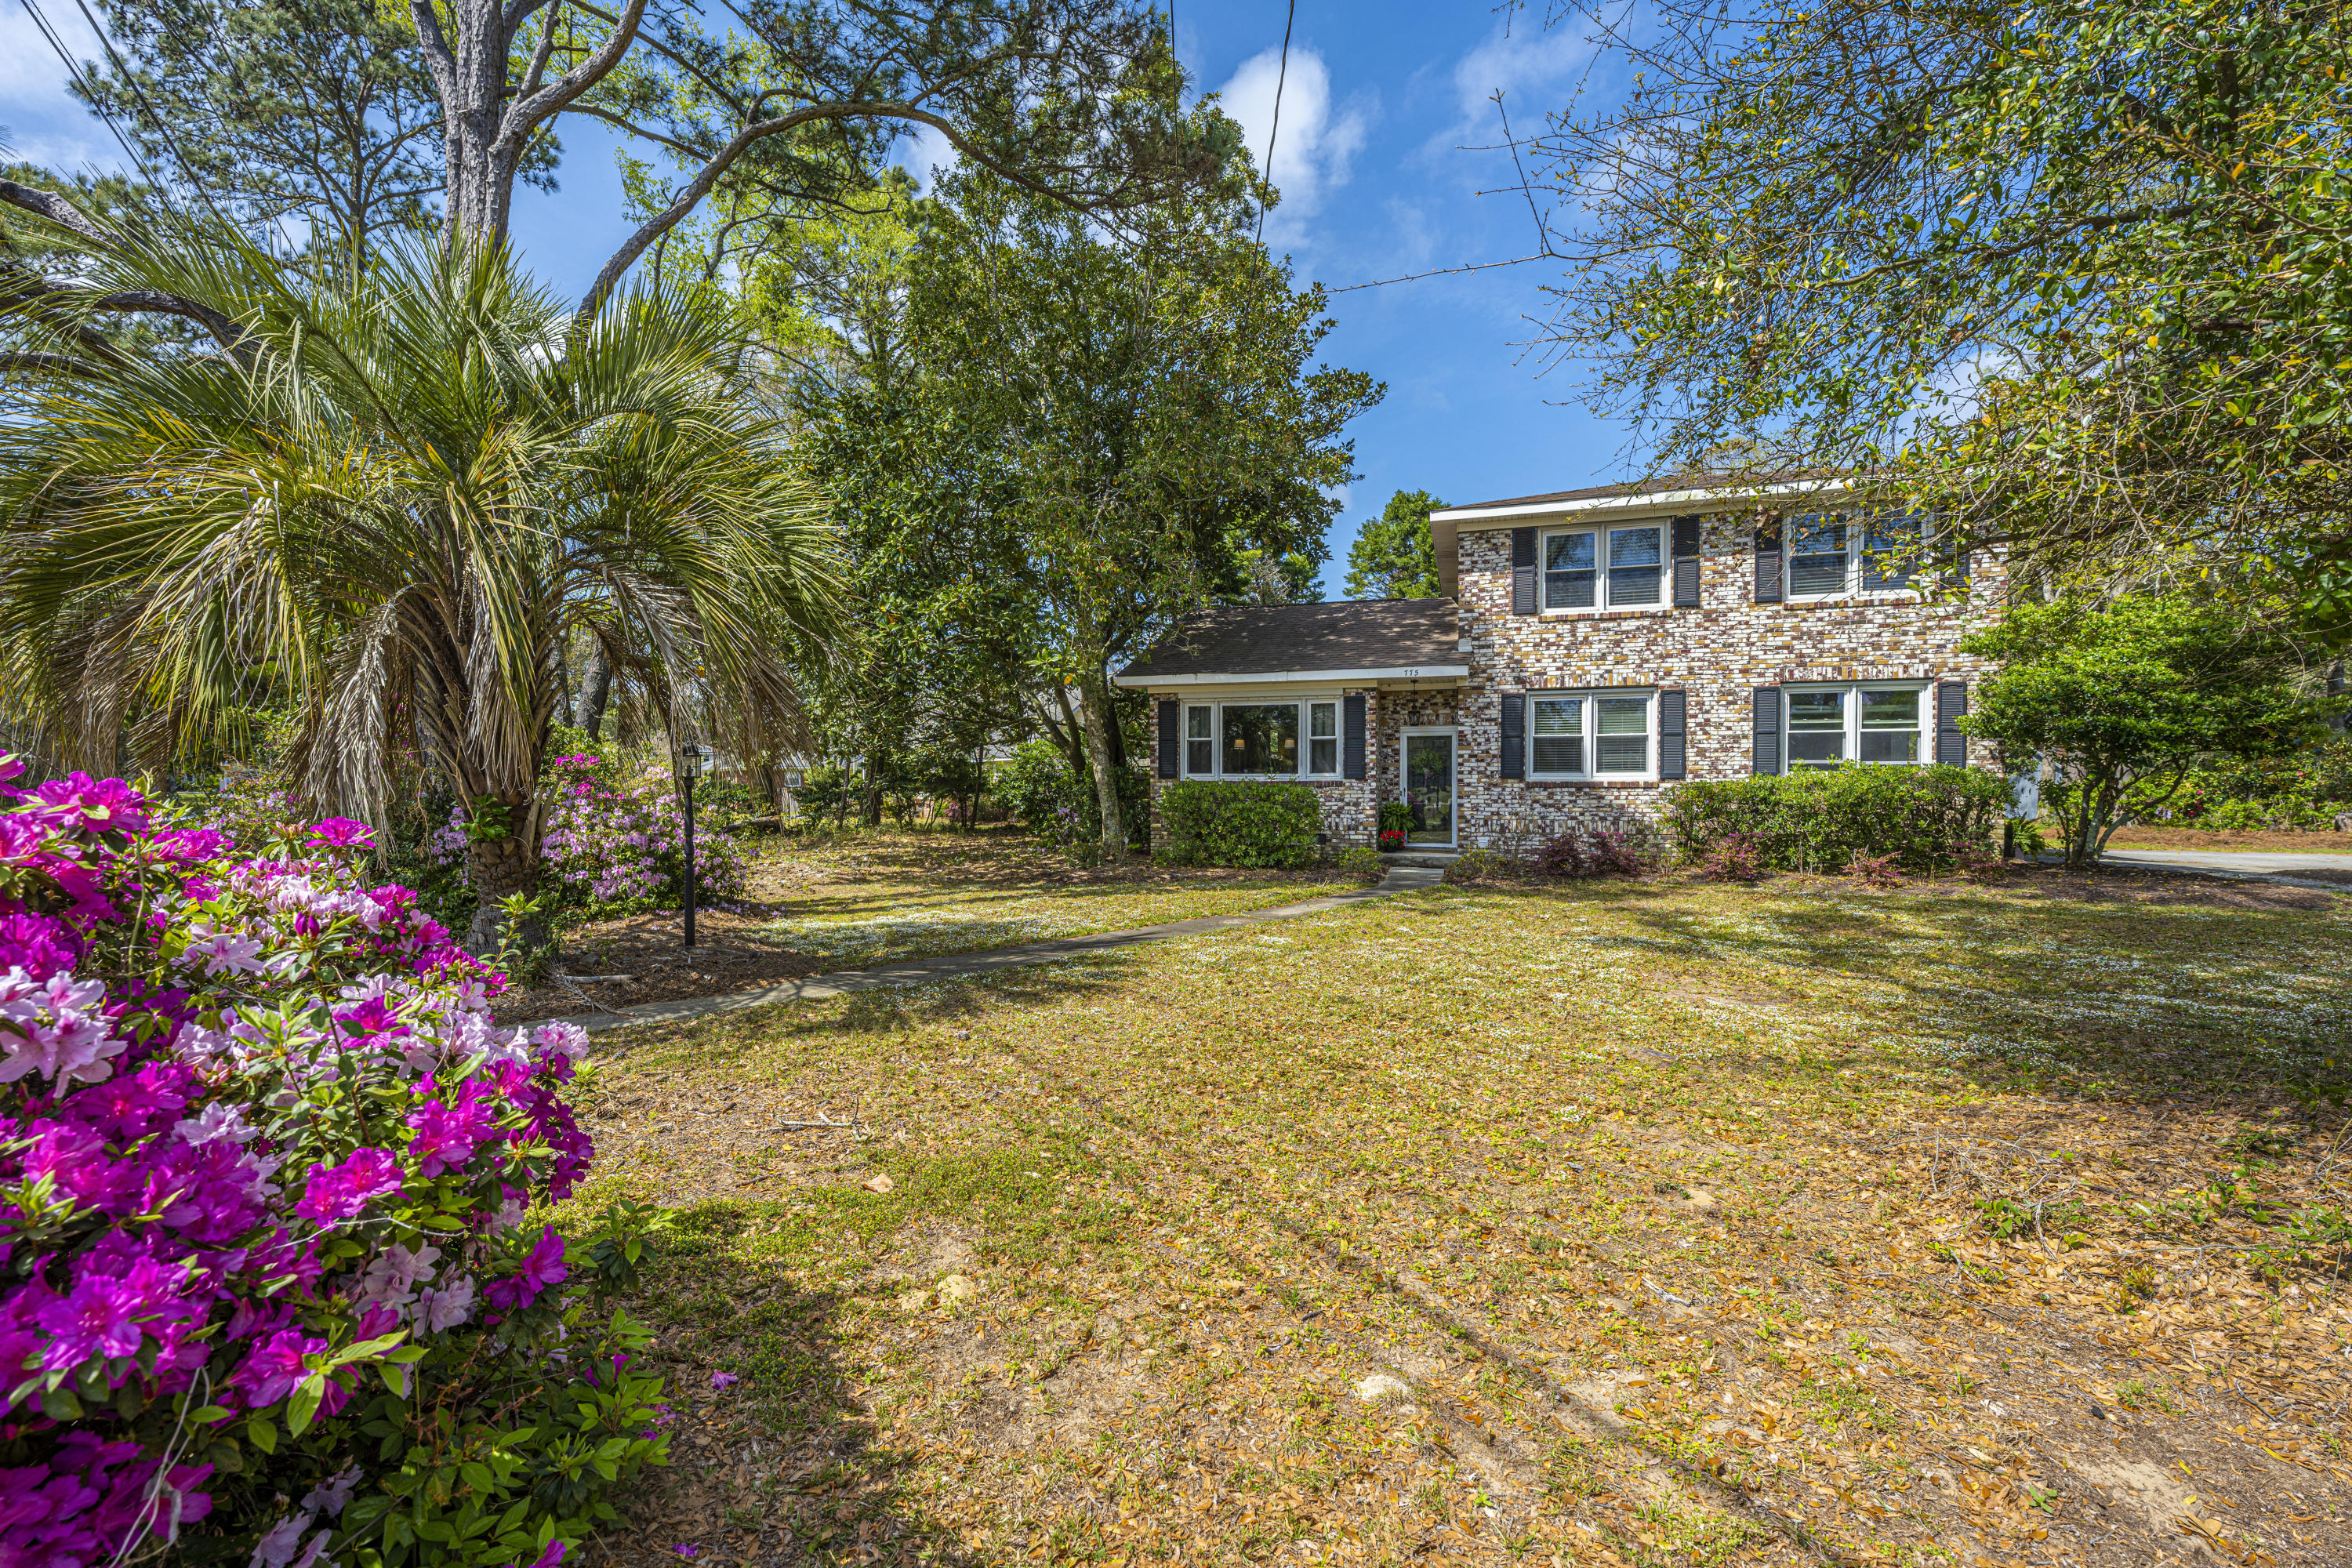 Stiles Point Homes For Sale - 775 Sparrow, Charleston, SC - 26